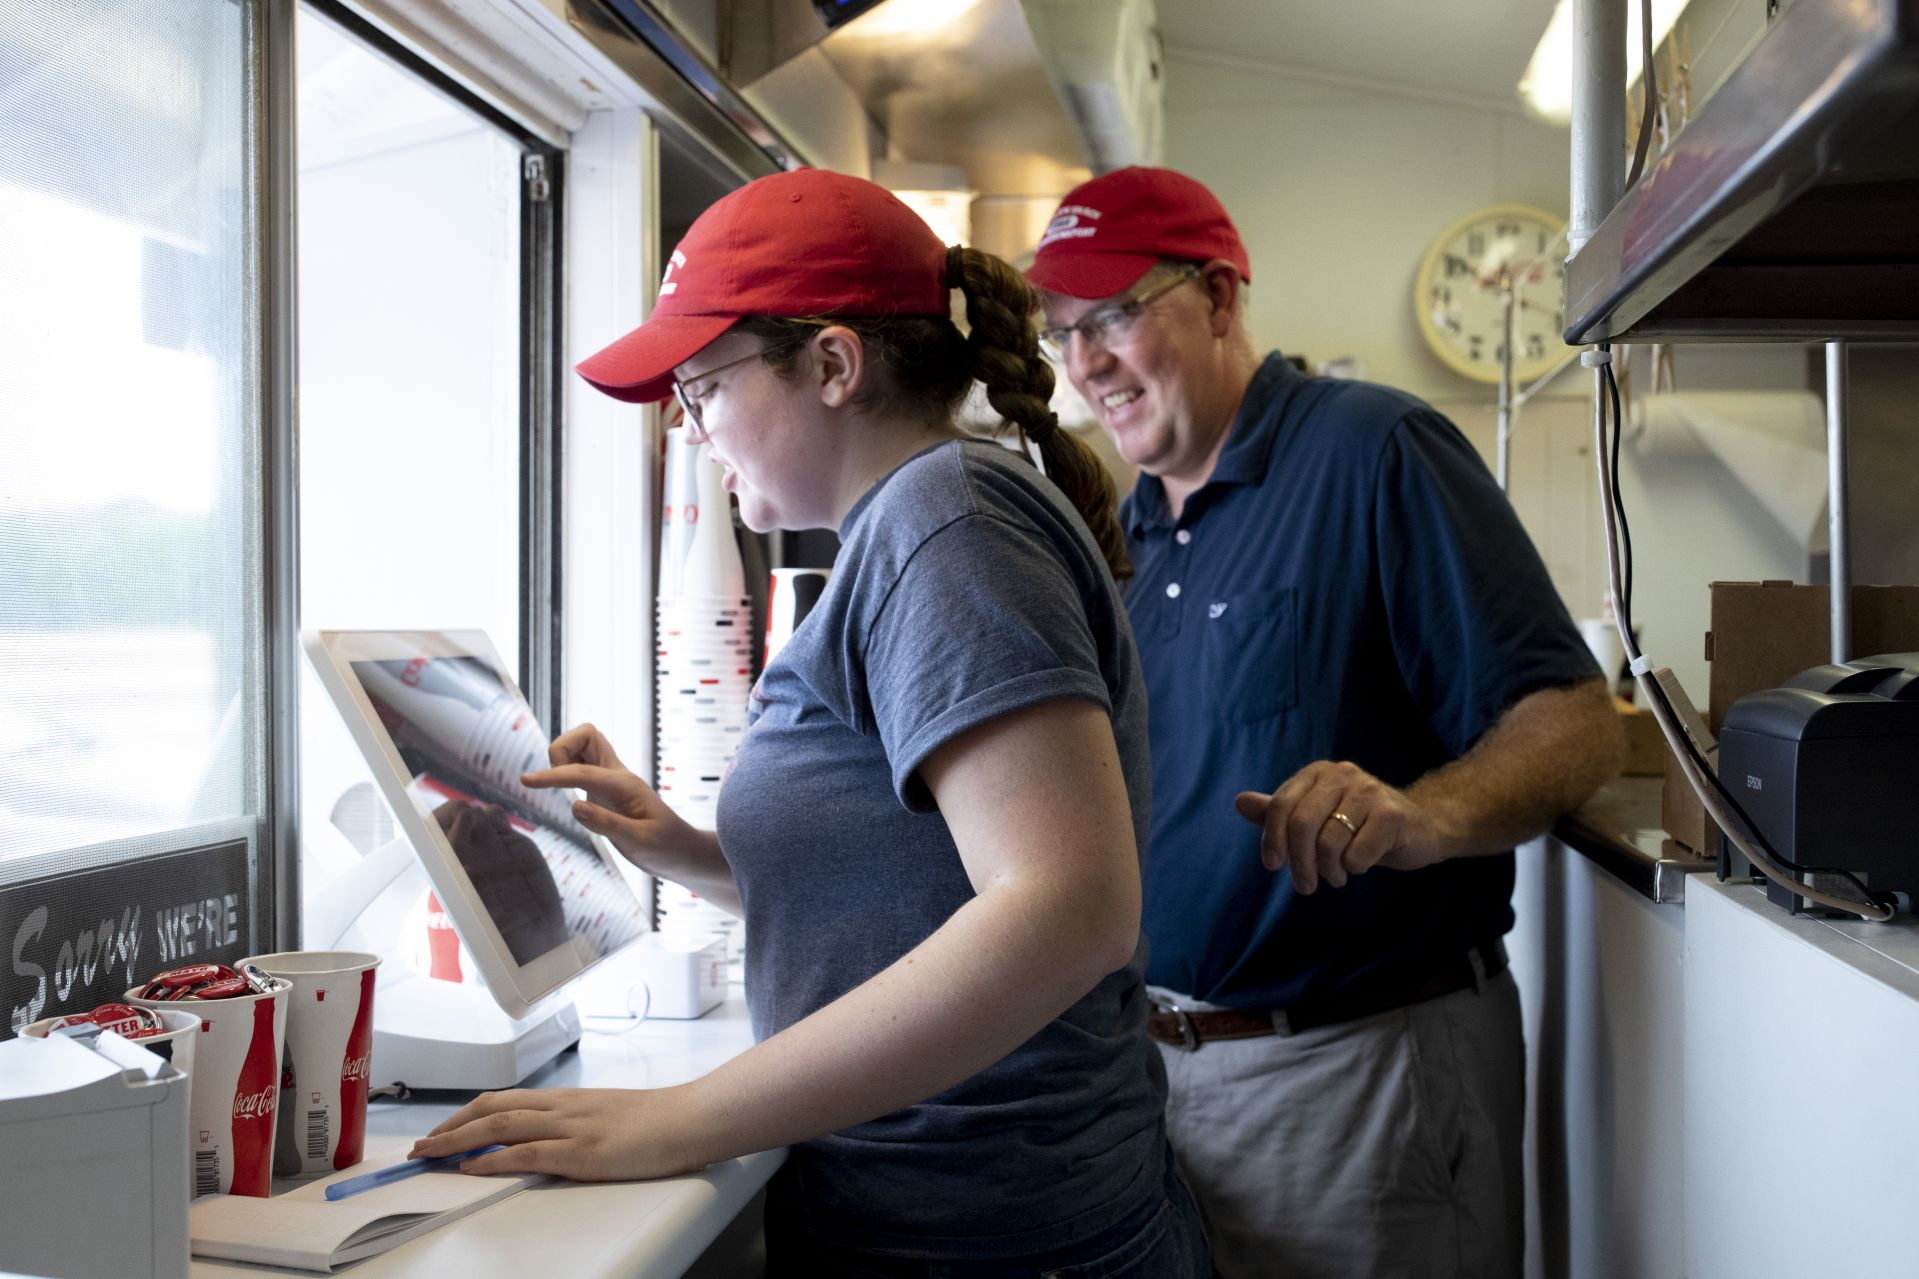 Steve Kingston '88 is owner of an iconic tourist spot, The Clam Shack (at 2 Western Ave. in Kennebunk), famed for its lobster rolls.With daughter Piper, 19, at the cash register